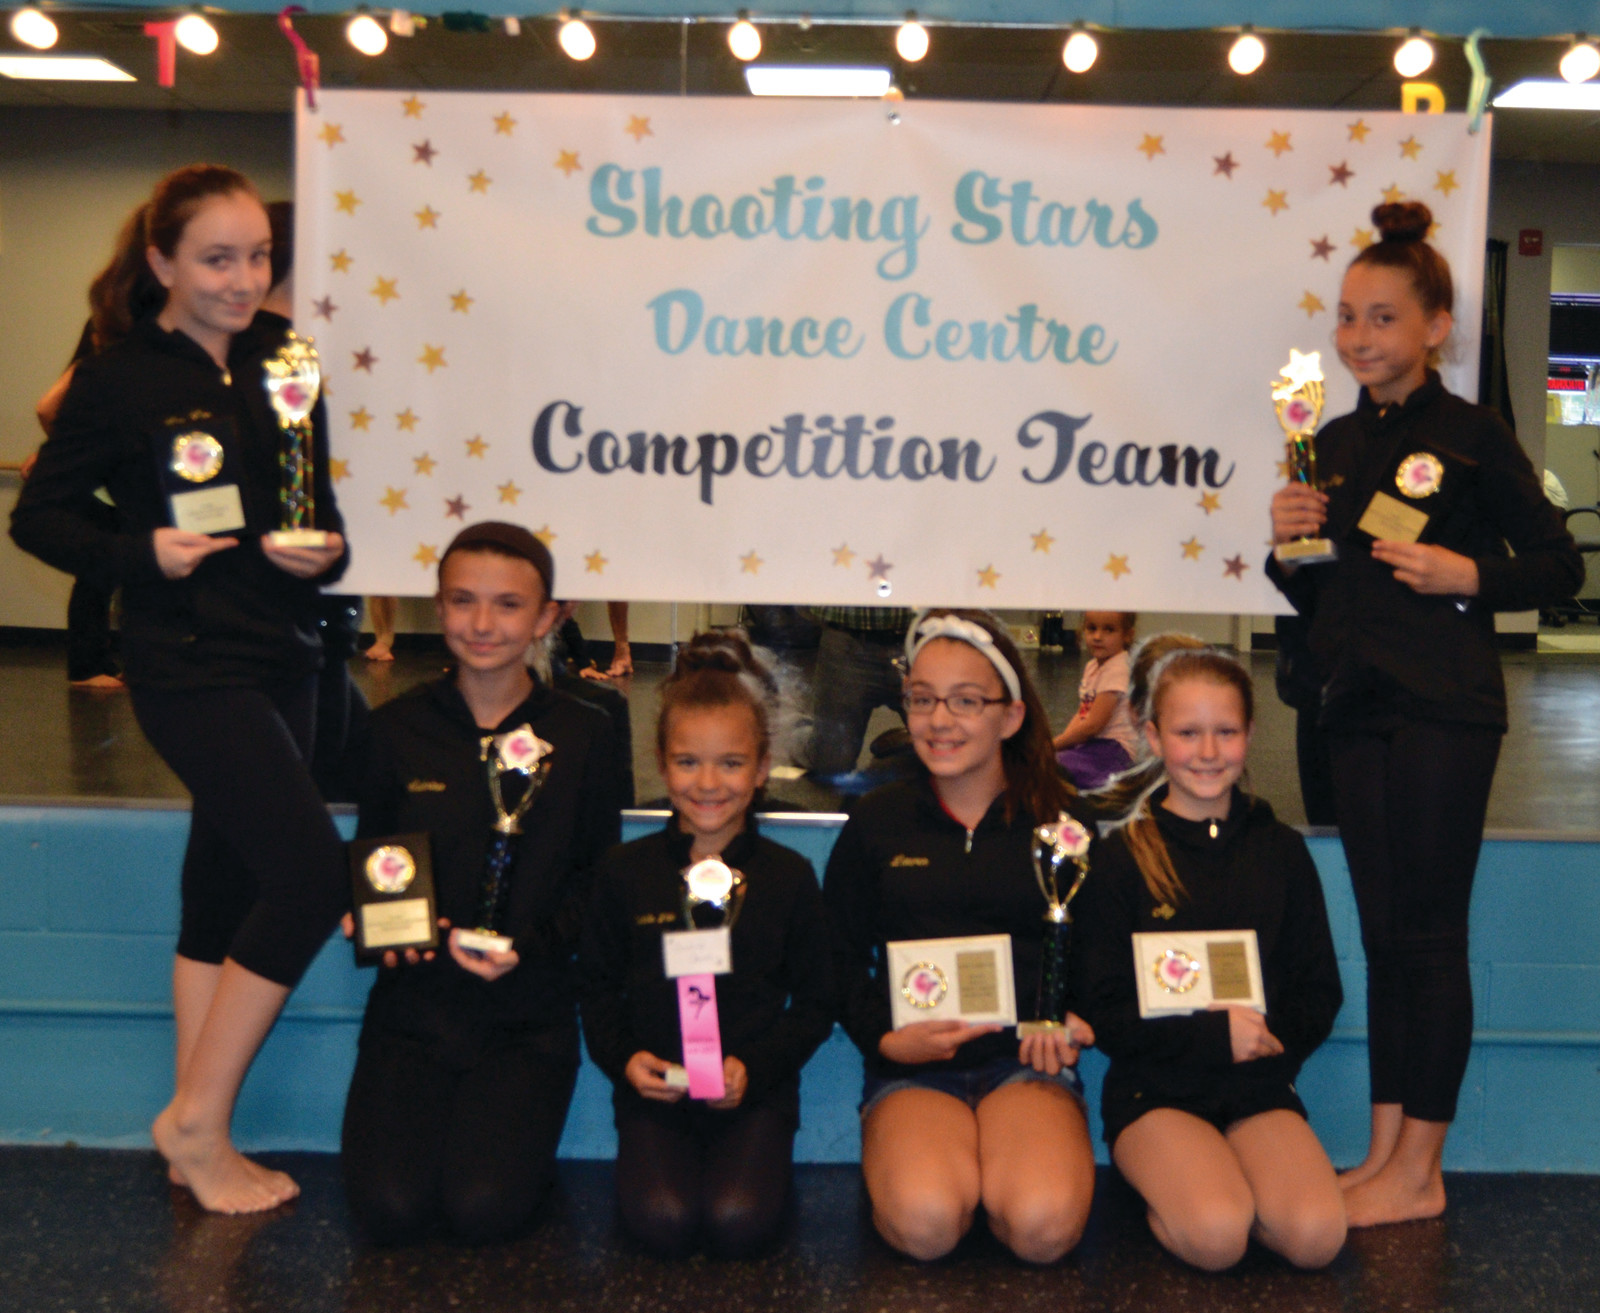 At right, pictured are Lele Rivas, Sabrina Smith, Isabella Alvarez, Alyson Brown, Lauren Depot and Cheyann Hazard, who took part in the Petite Small Group Tap and received High Gold, Division High Score, and Performance Showcase Invite.